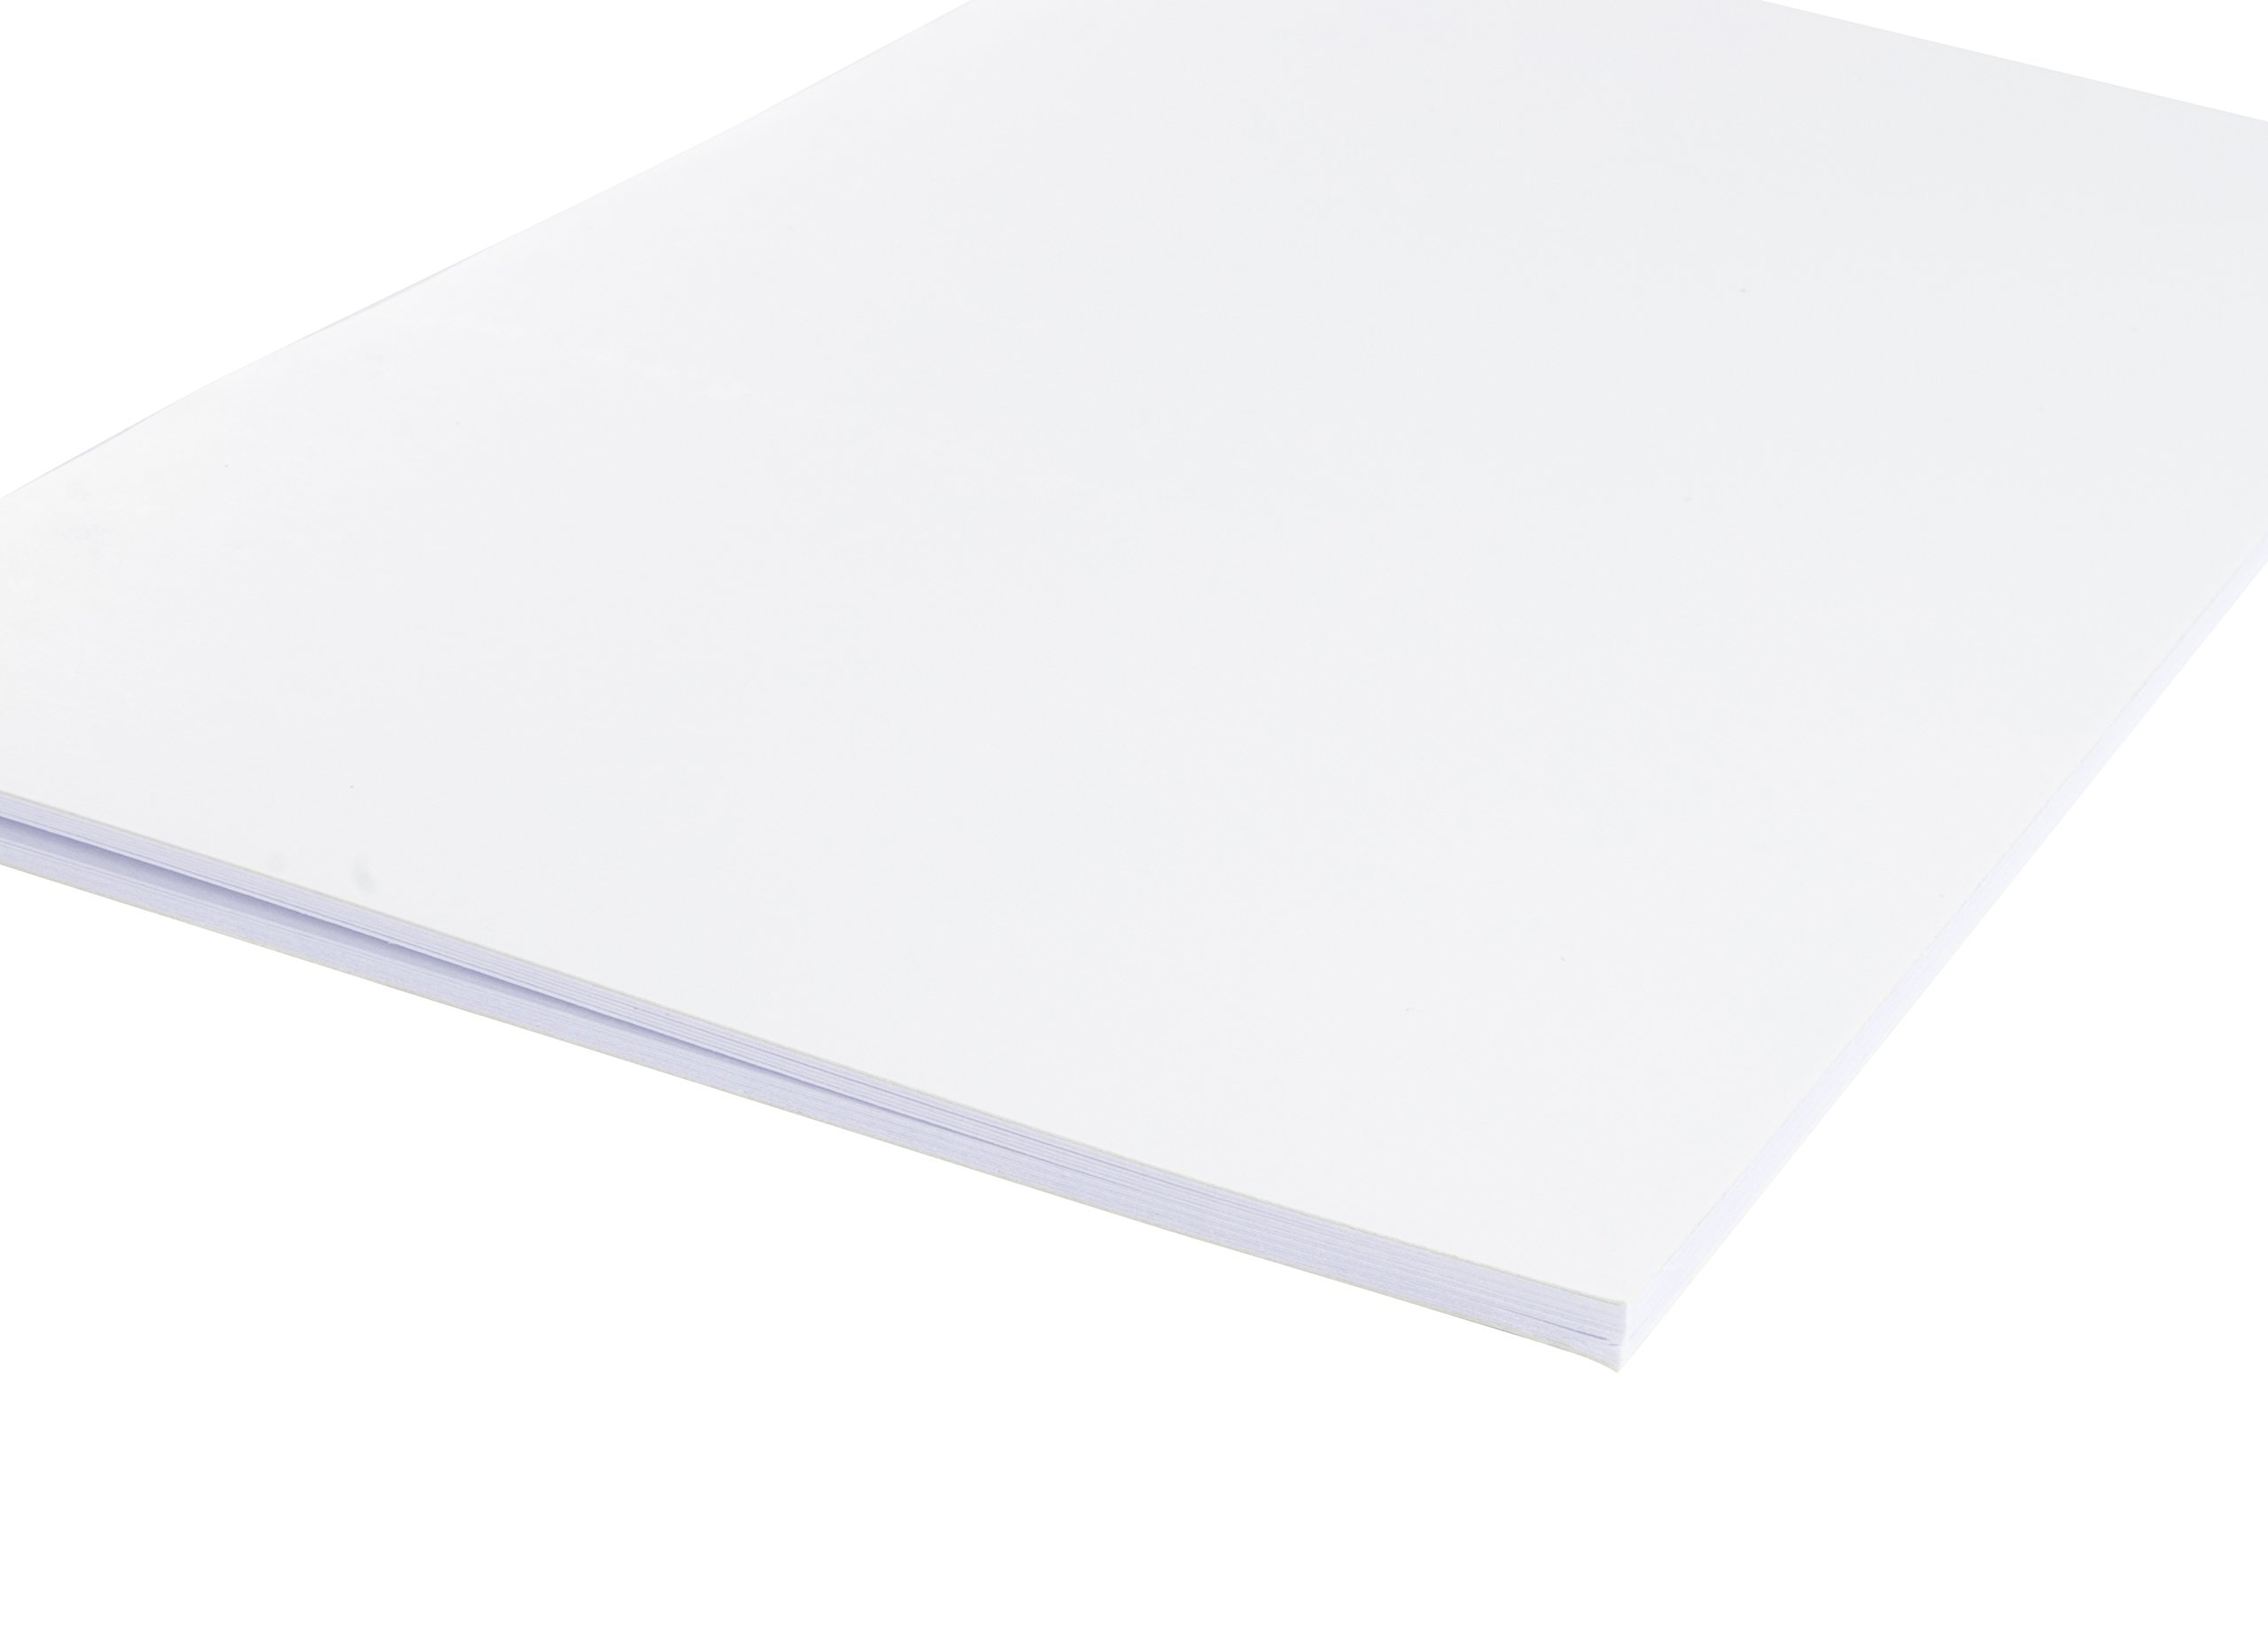 Blank Notebook - 24-Pack Unlined Books, Unruled Plain Travel Journals for Students, School, Children's Writing Books, Creative Class Project, White, 5.5 x 8.5 Inches, Half Letter Sized, 24 Sheets Each by Paper Junkie (Image #4)